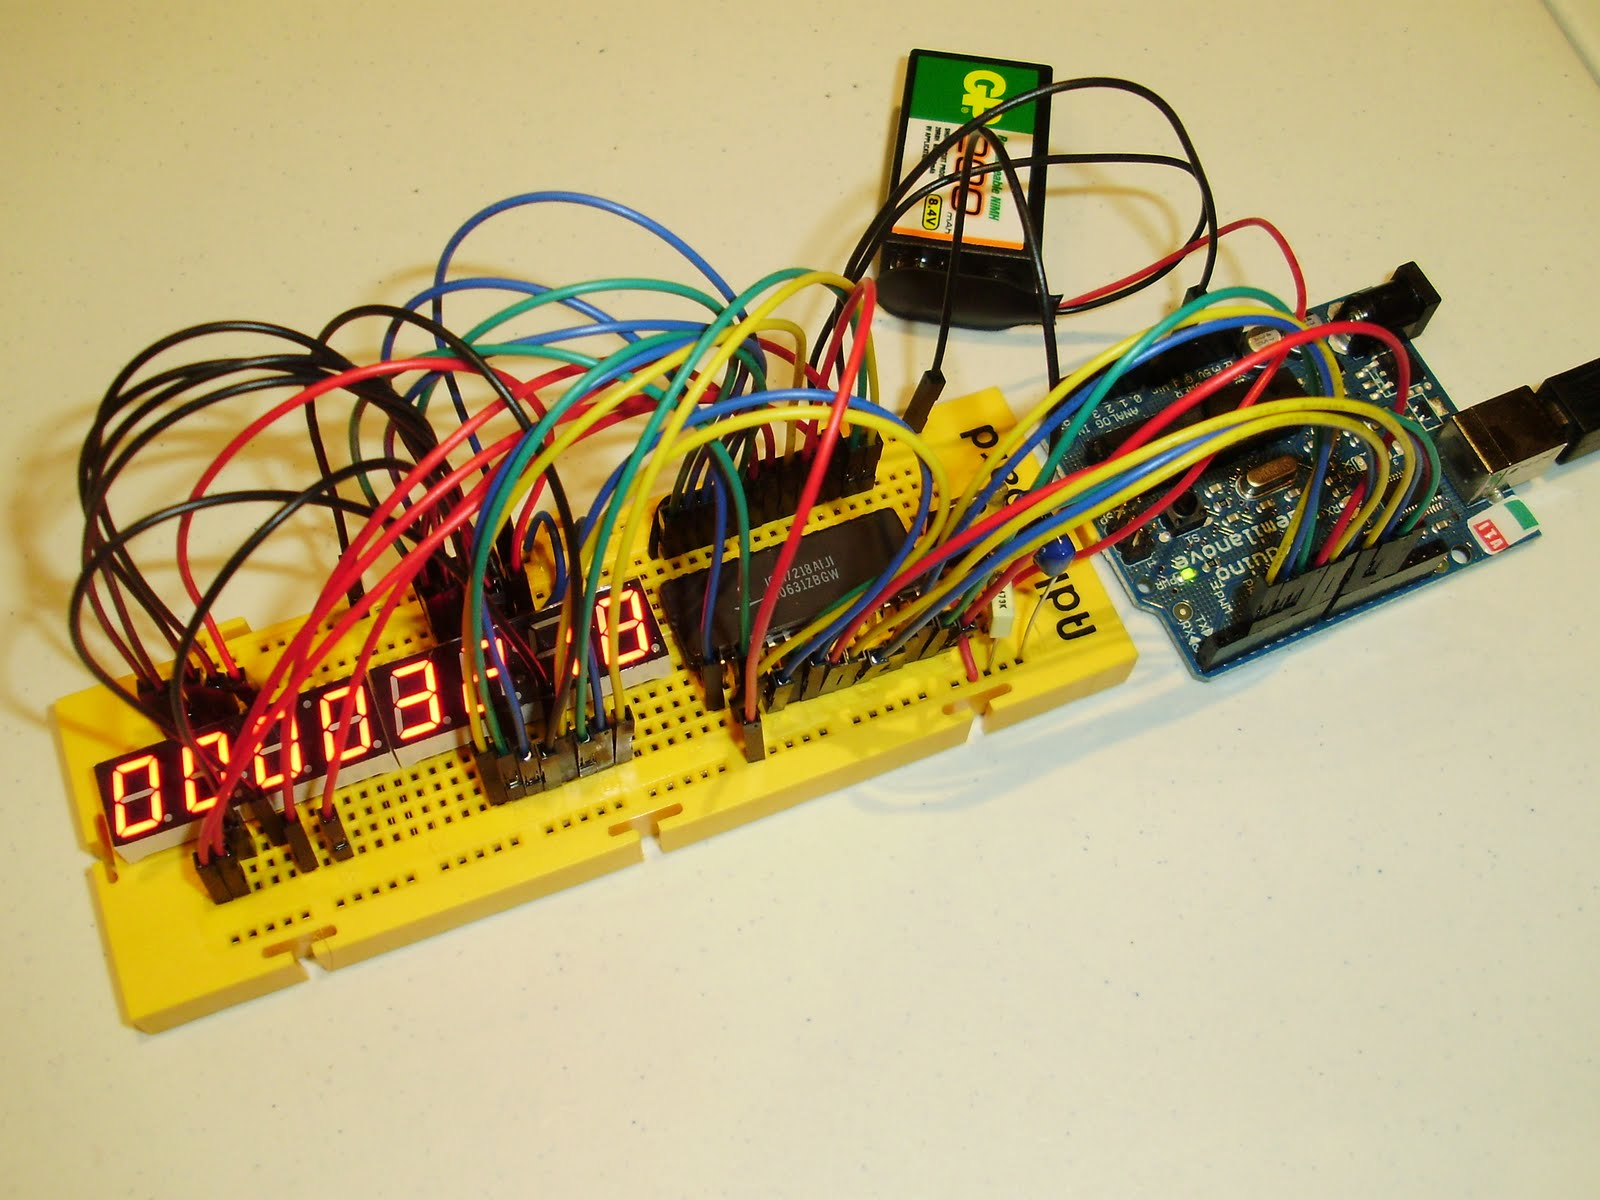 Ardugonic Driving An 8 Digits 7 Segment Display With Arduino And The 4digit 7segment Led Driver Circuit We Will Build Using A Icm7218a